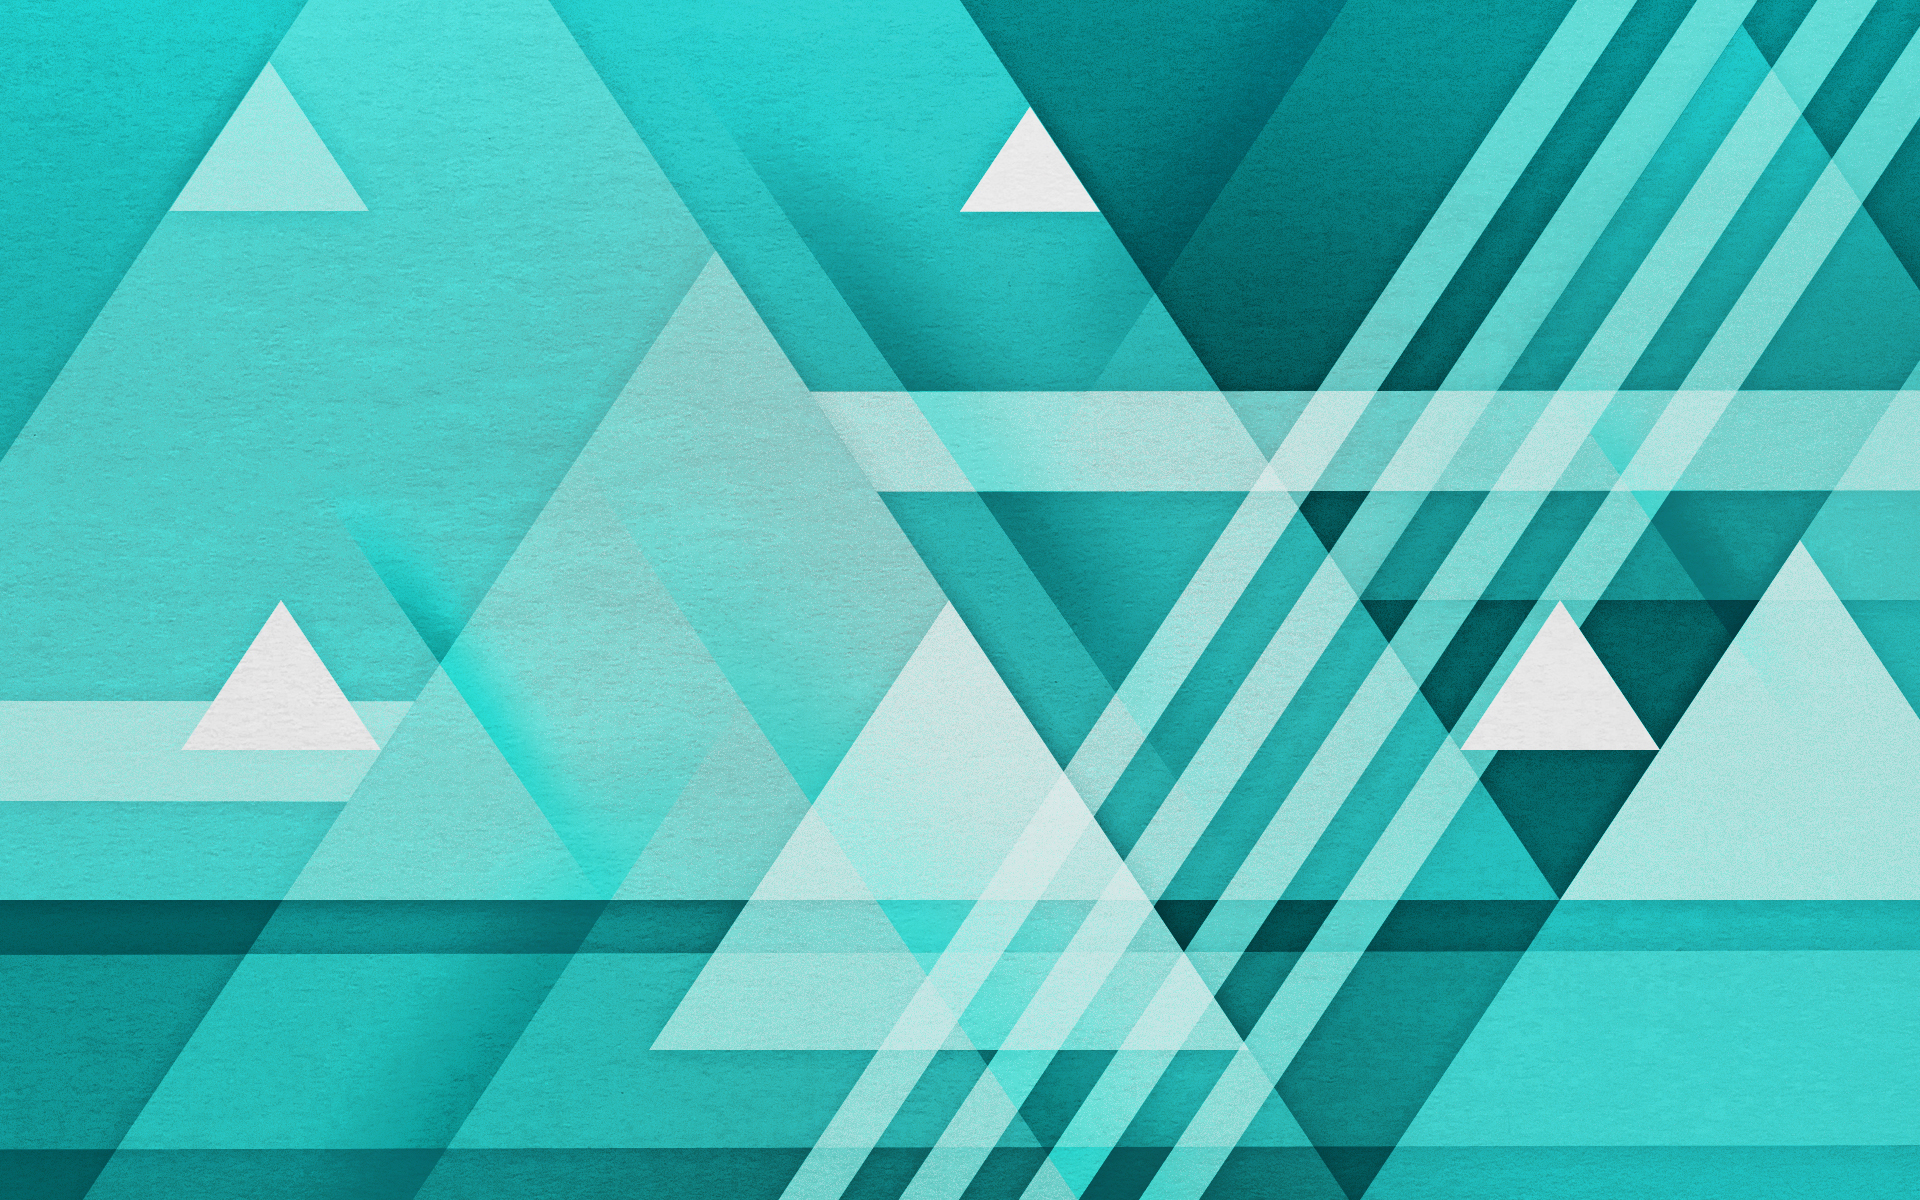 Abstract Shapes Wallpaper